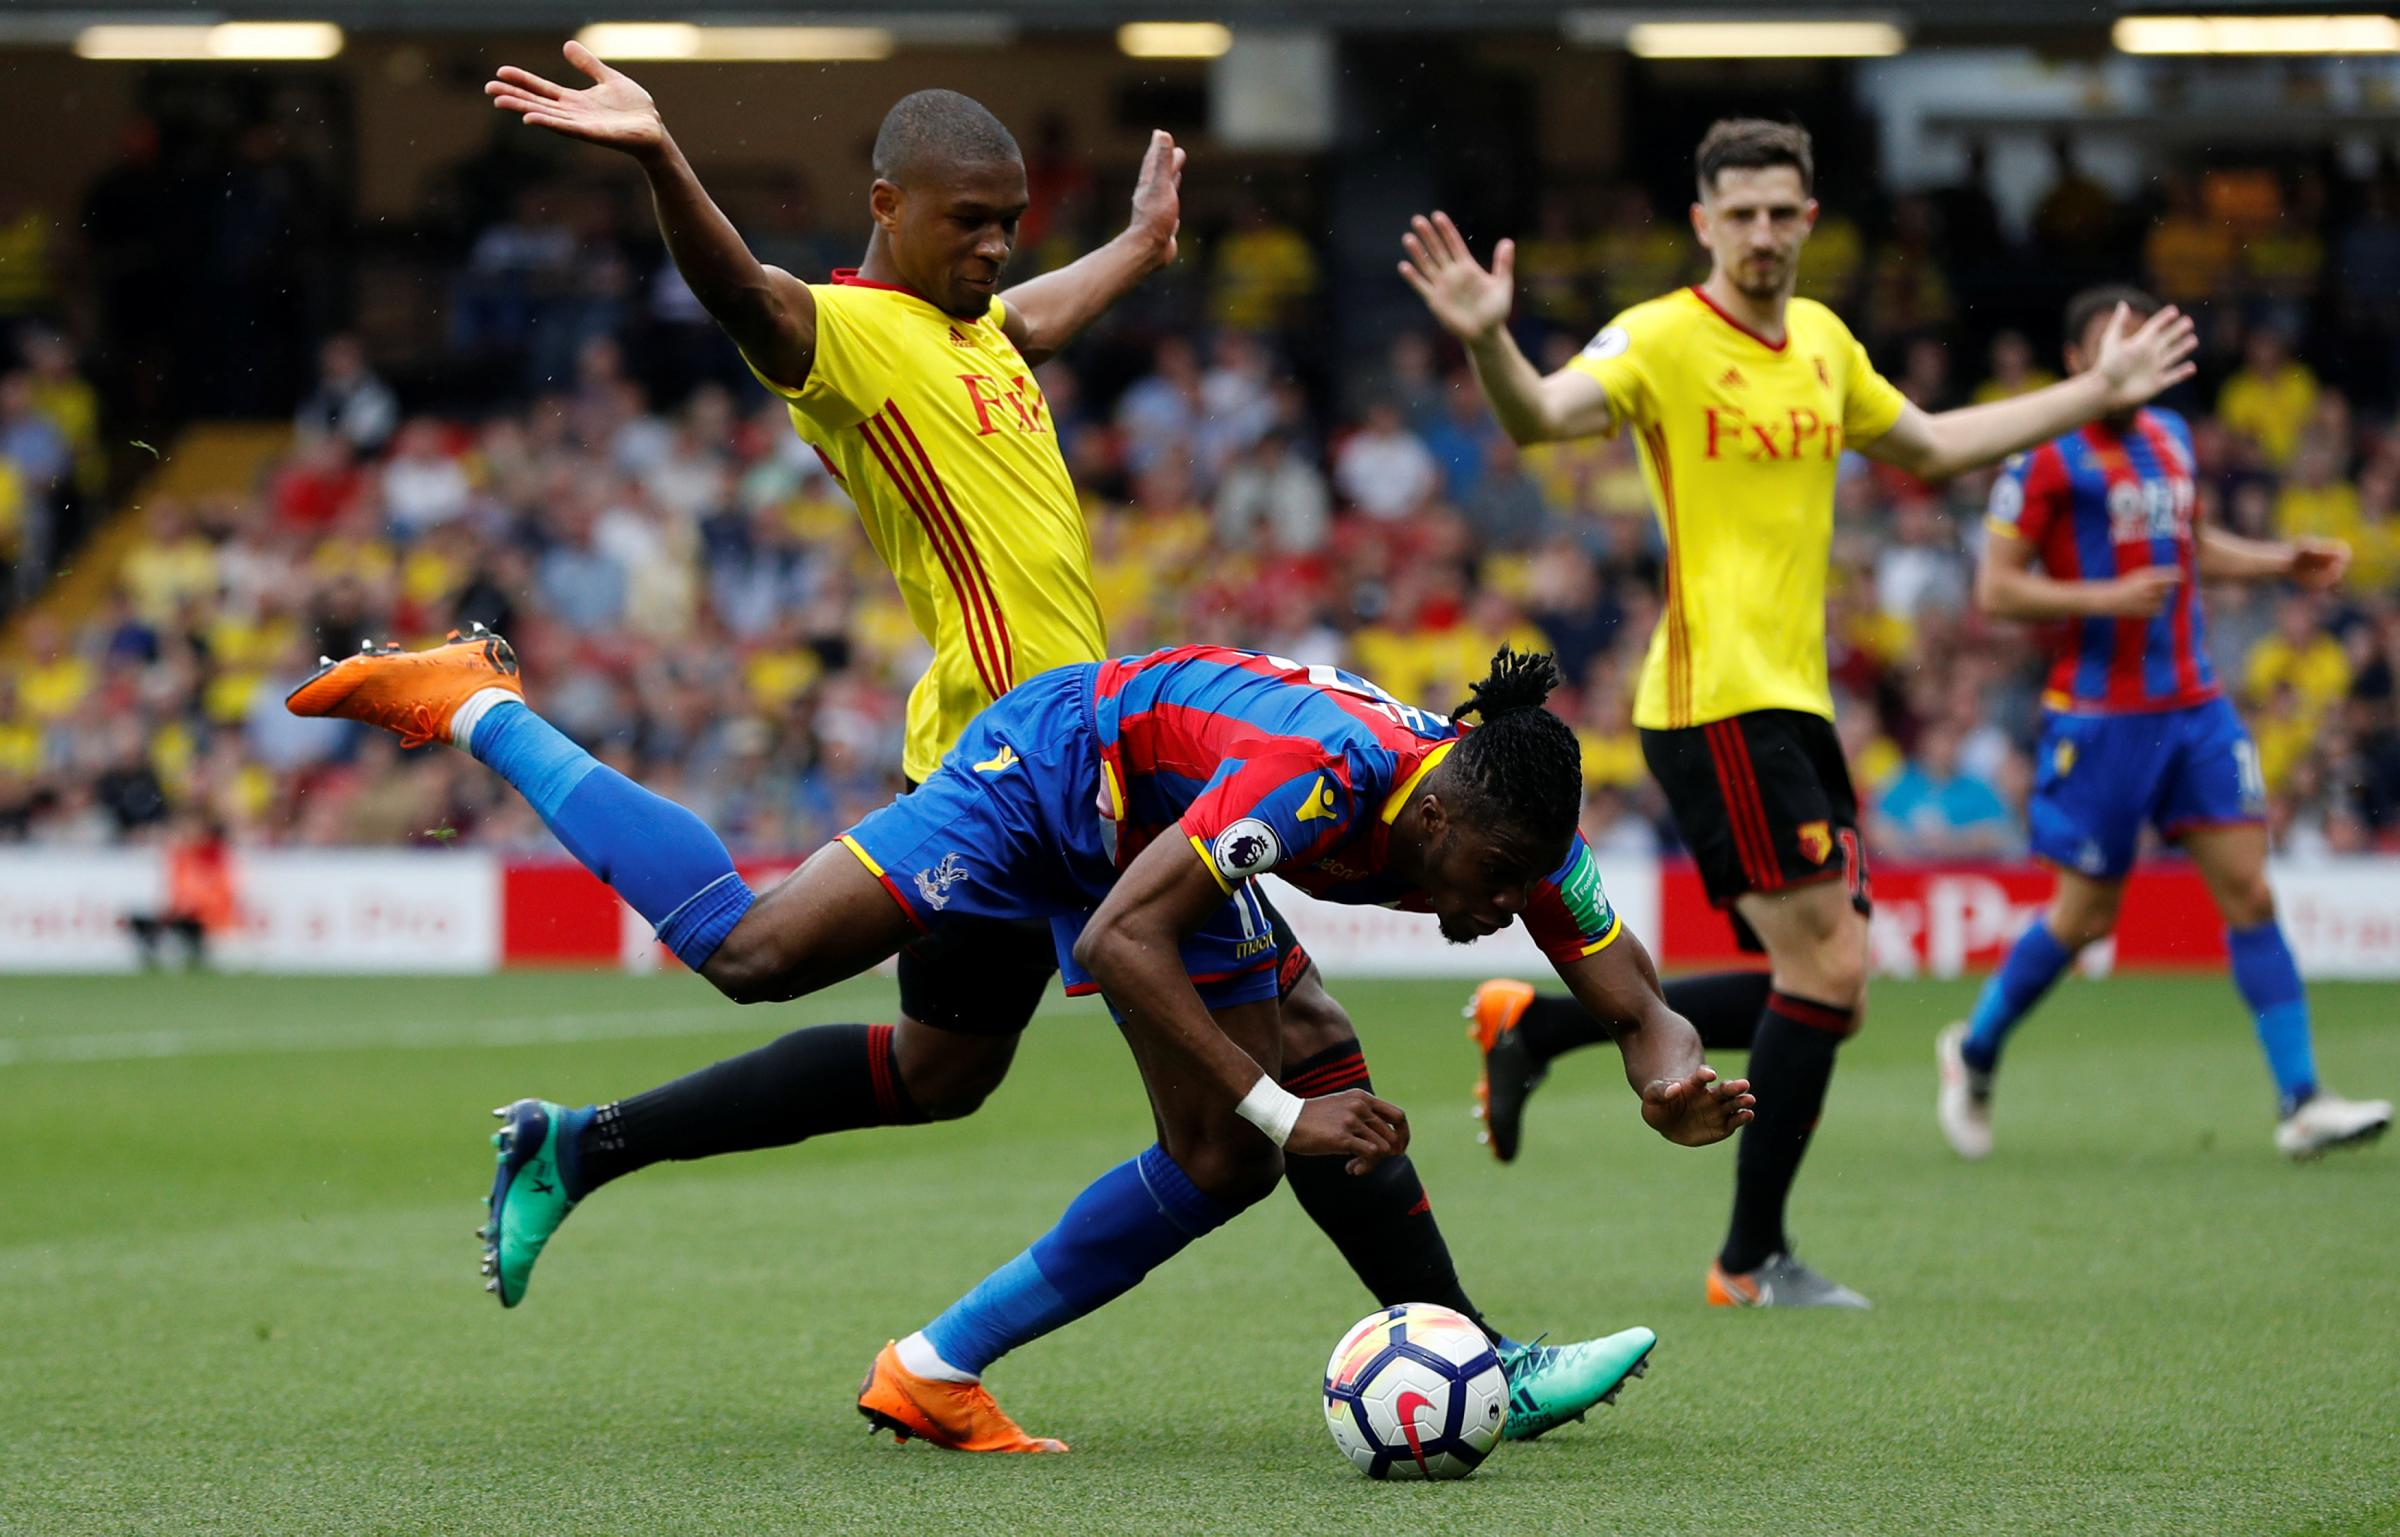 Wilfried Zaha: There is an agenda against me, says Crystal Palace winger